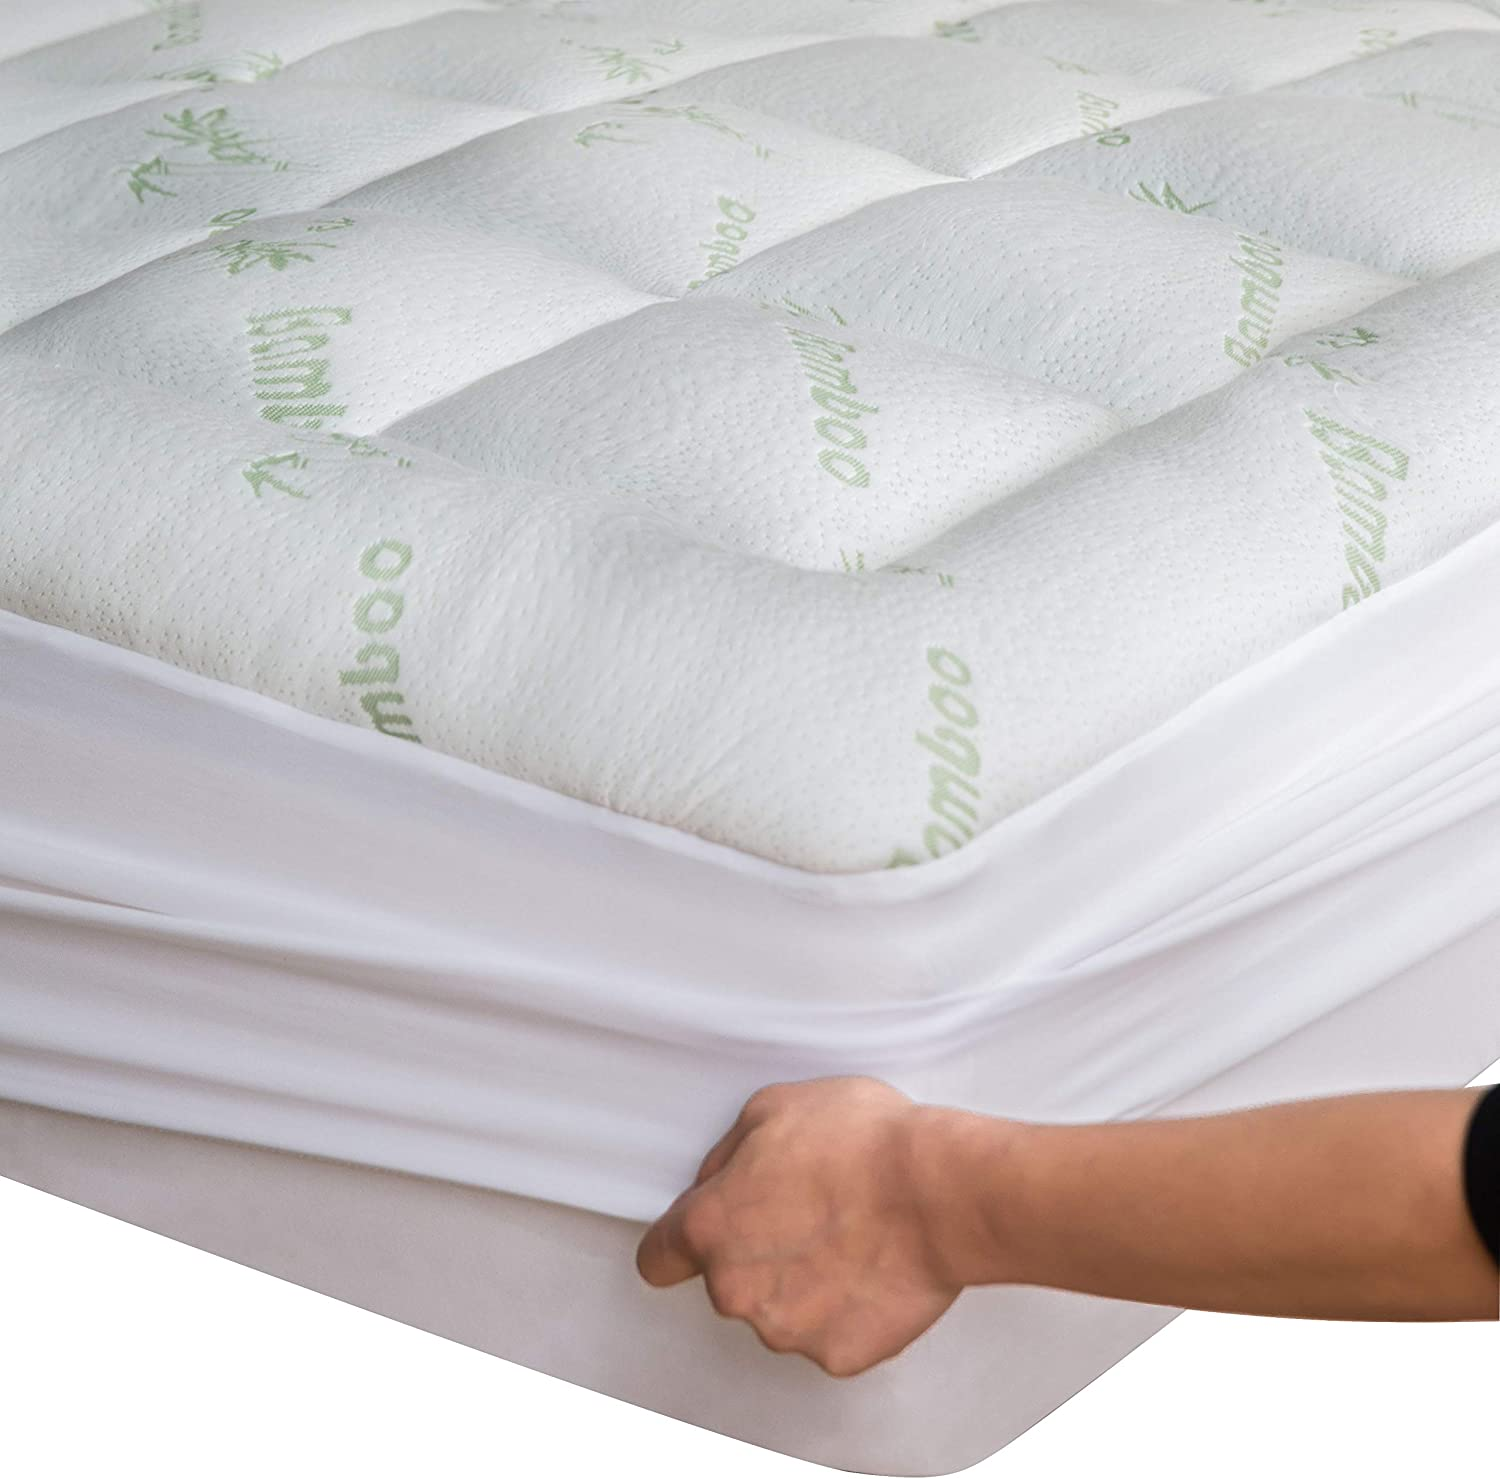 Bamboo Mattress Topper Cover Queen with 1 Pillow Protector Cooling Pillow Top Mattress Fits 8-20 Inches Deep Mattresses Pad Breathable Extra Plush Thick Extra Deep Fitted 20 Inches Rayon: Home & Kitchen